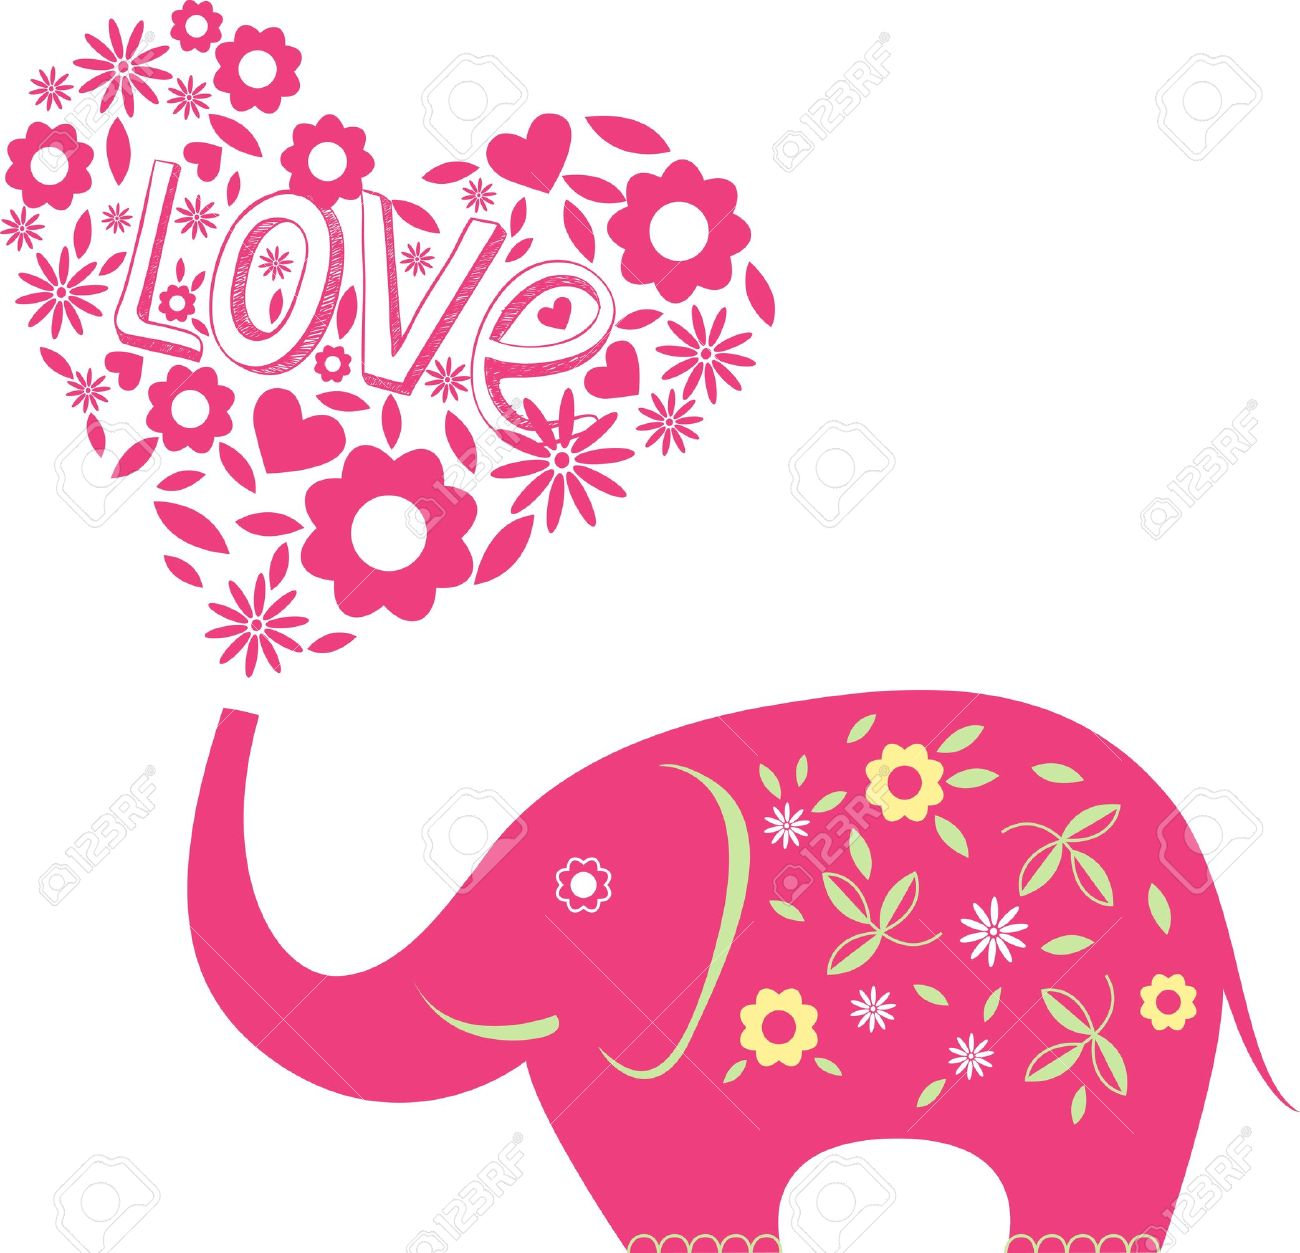 Elephant with hearts clipart clip free Abstract Illustration With Elephant And Hearts Royalty Free ... clip free